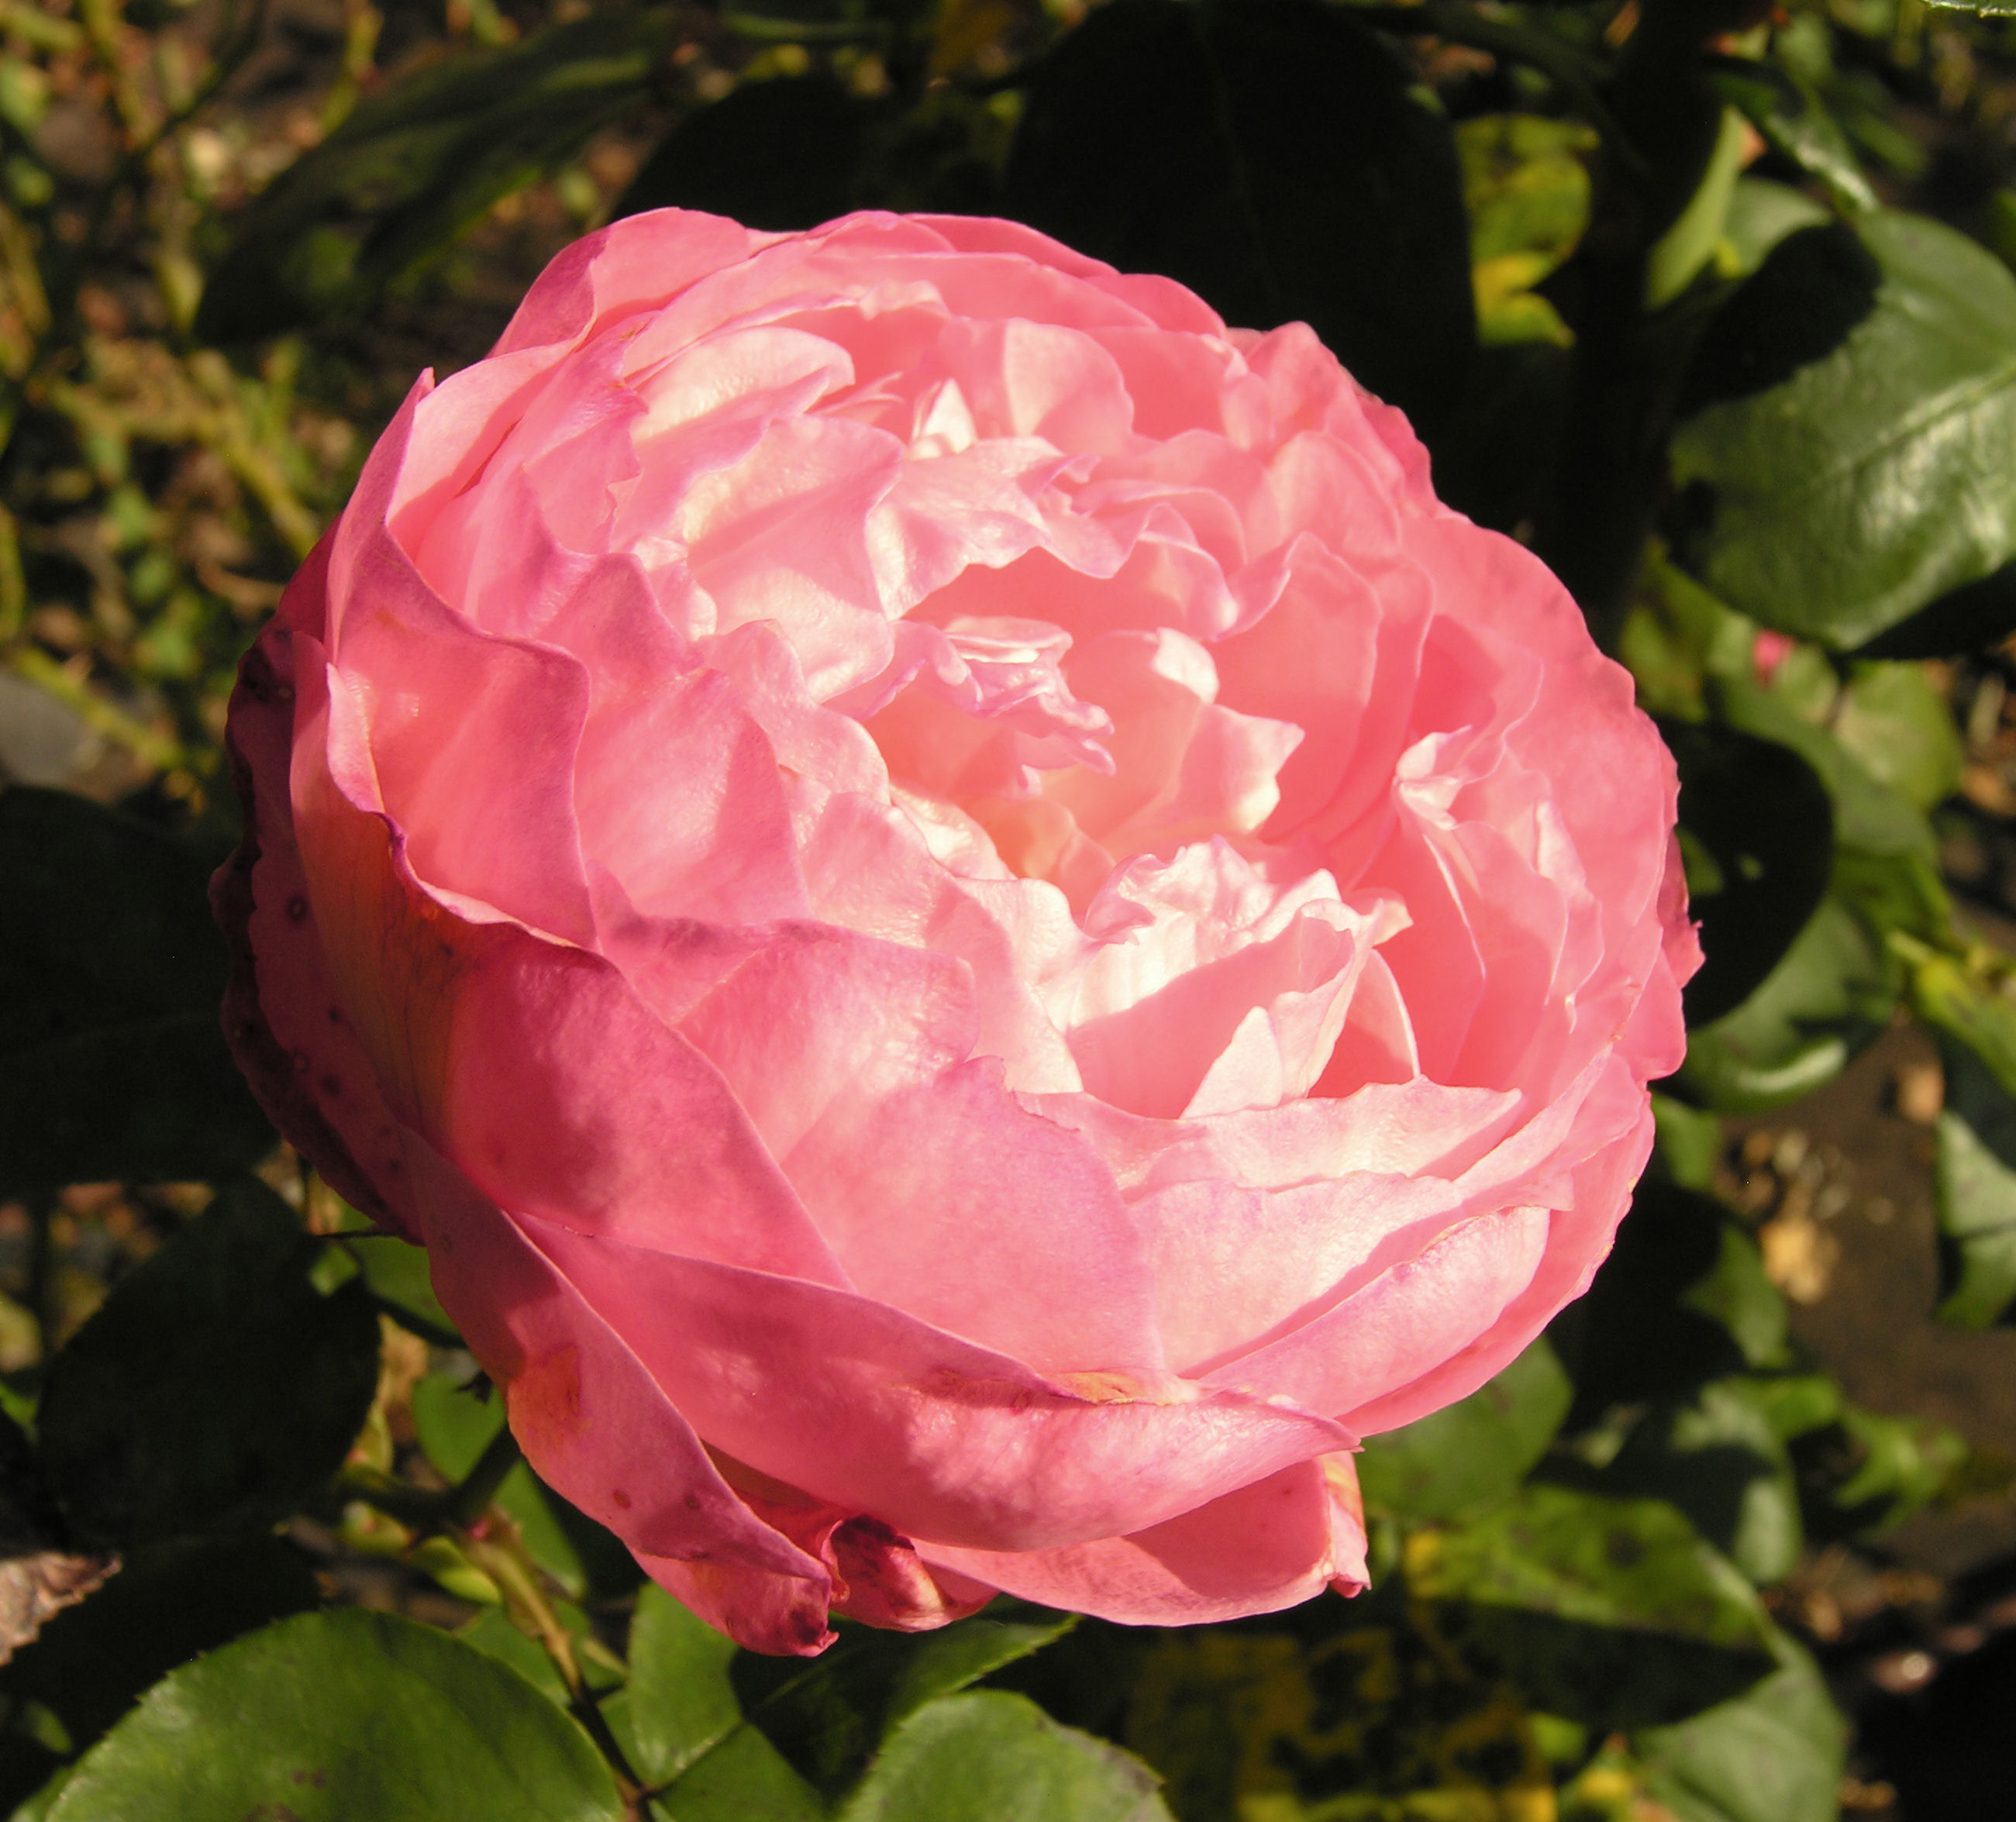 Rosa 39 panth re rose - Image panthere rose ...